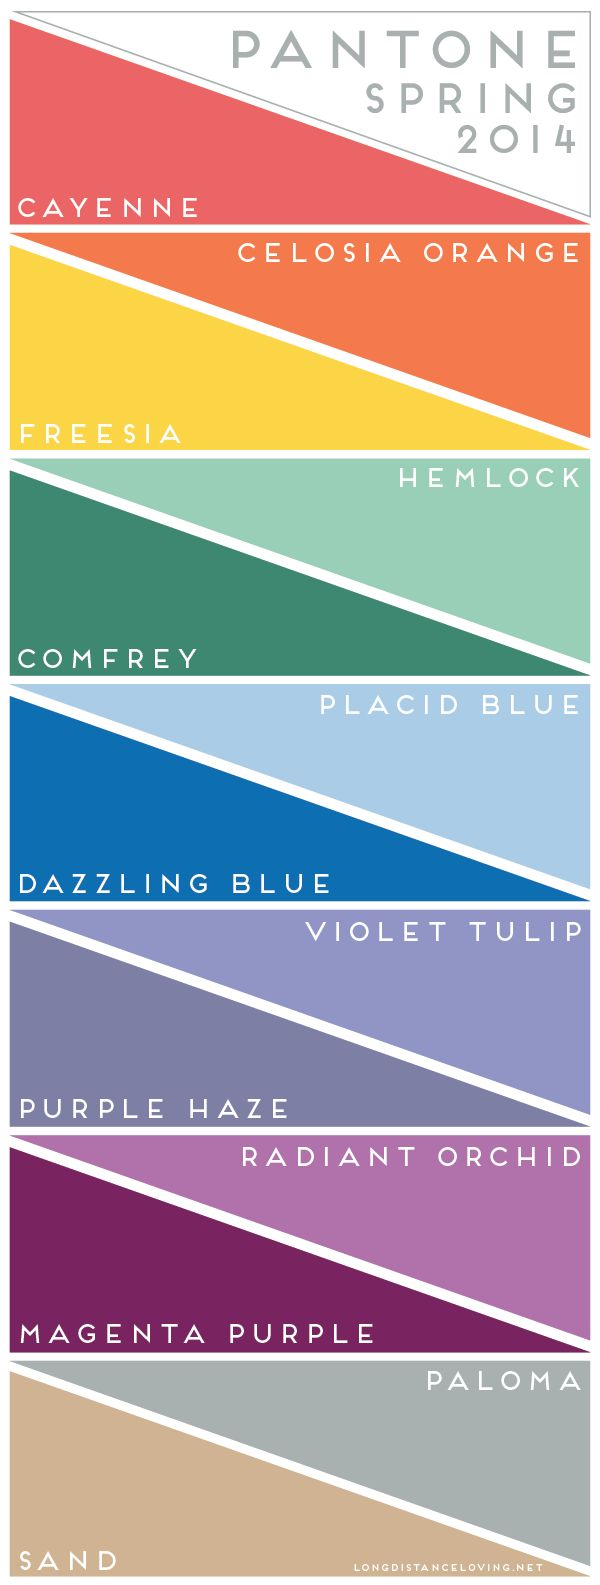 pantone color report: spring 2014